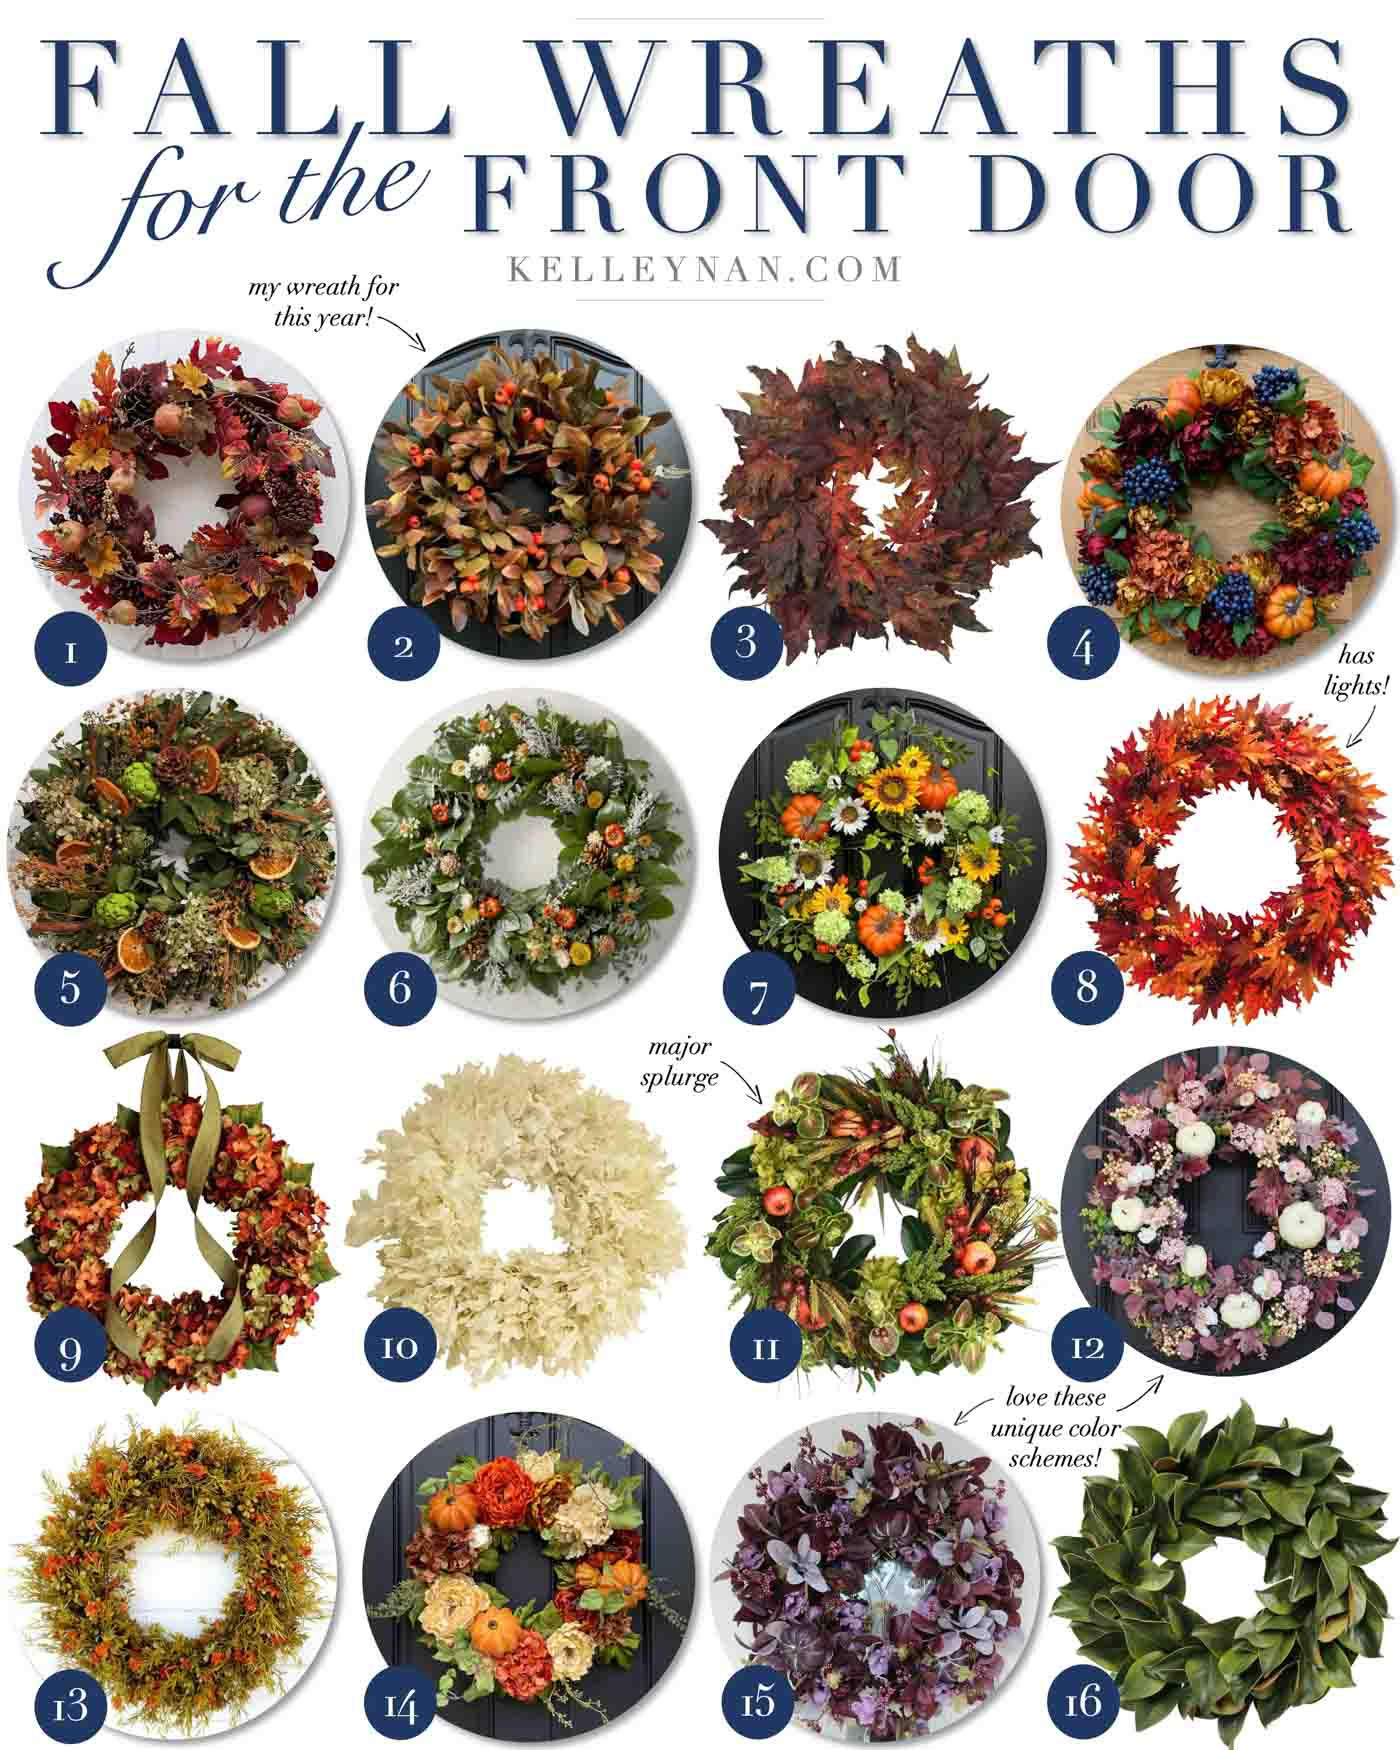 Favorite Fall Wreaths for the Front Door for 2020